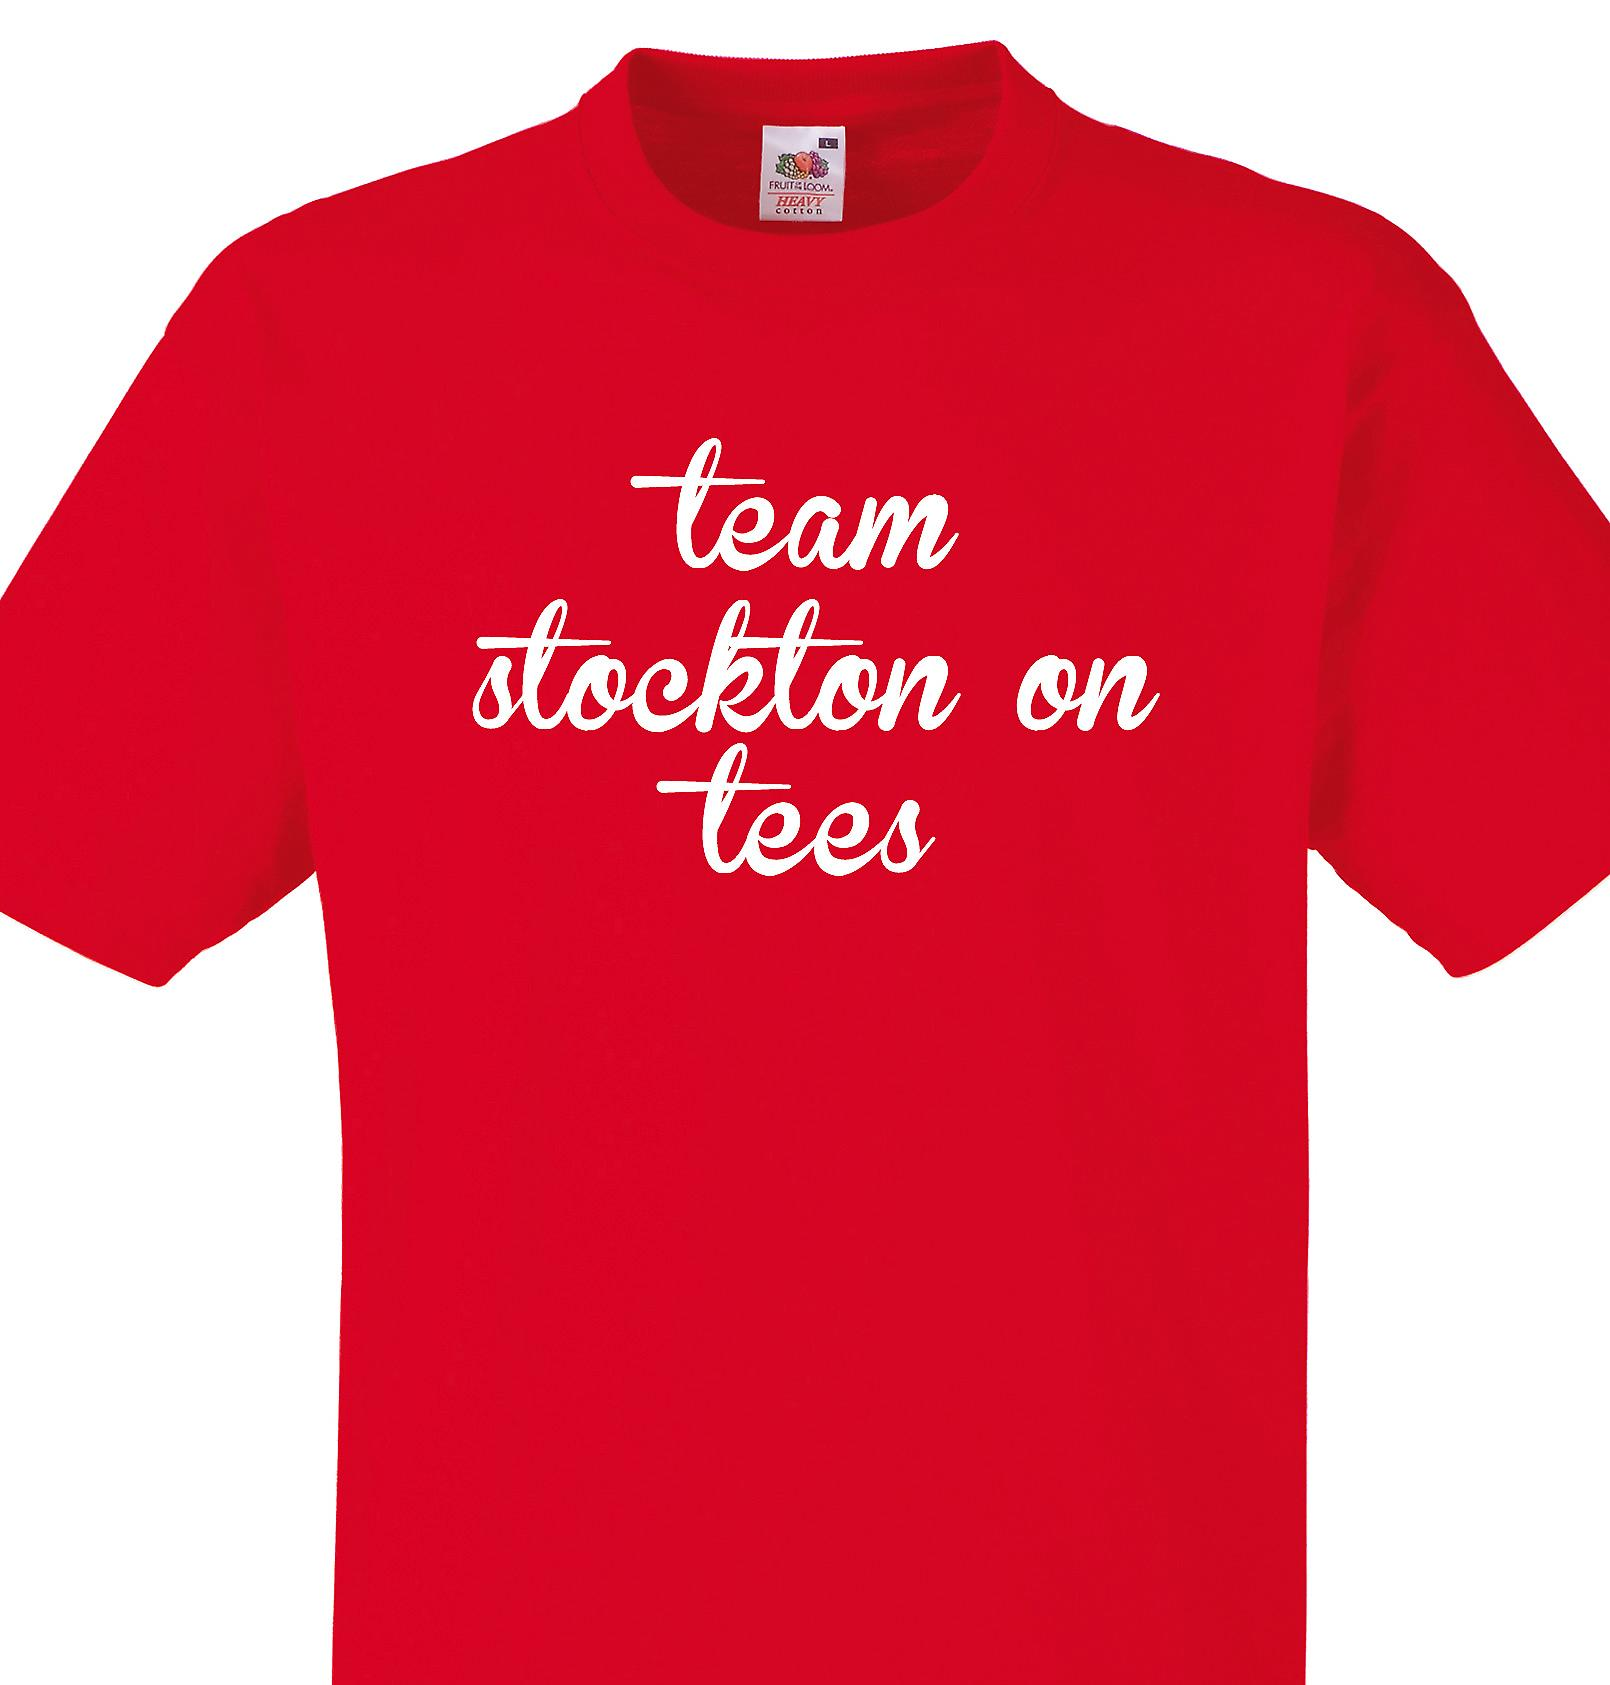 Team Stockton on tees Red T shirt